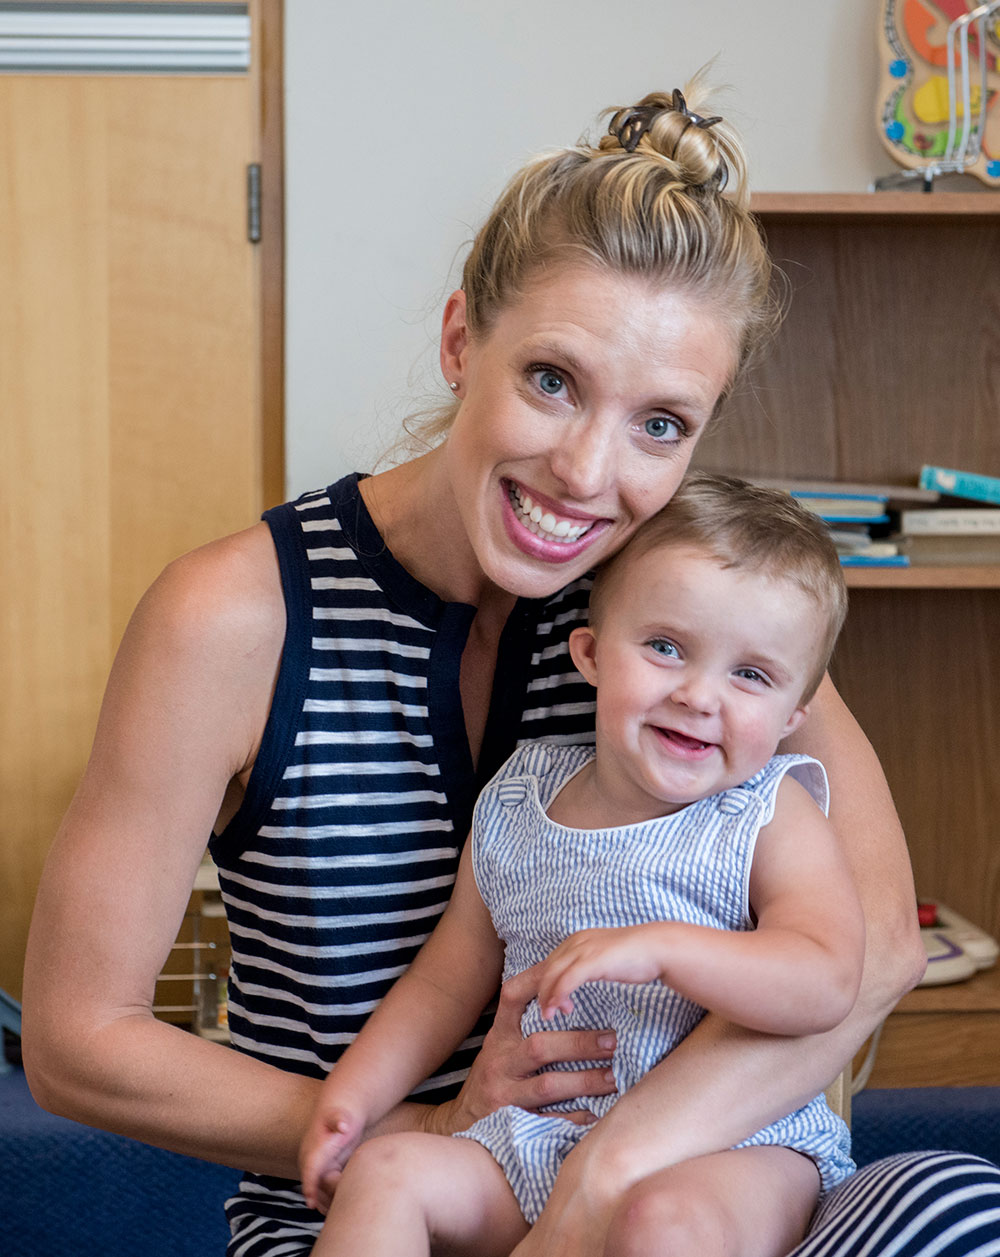 Lindsey Baker collaborated closely with the feeding center team to solve the mystery of her son's feeding disorder.